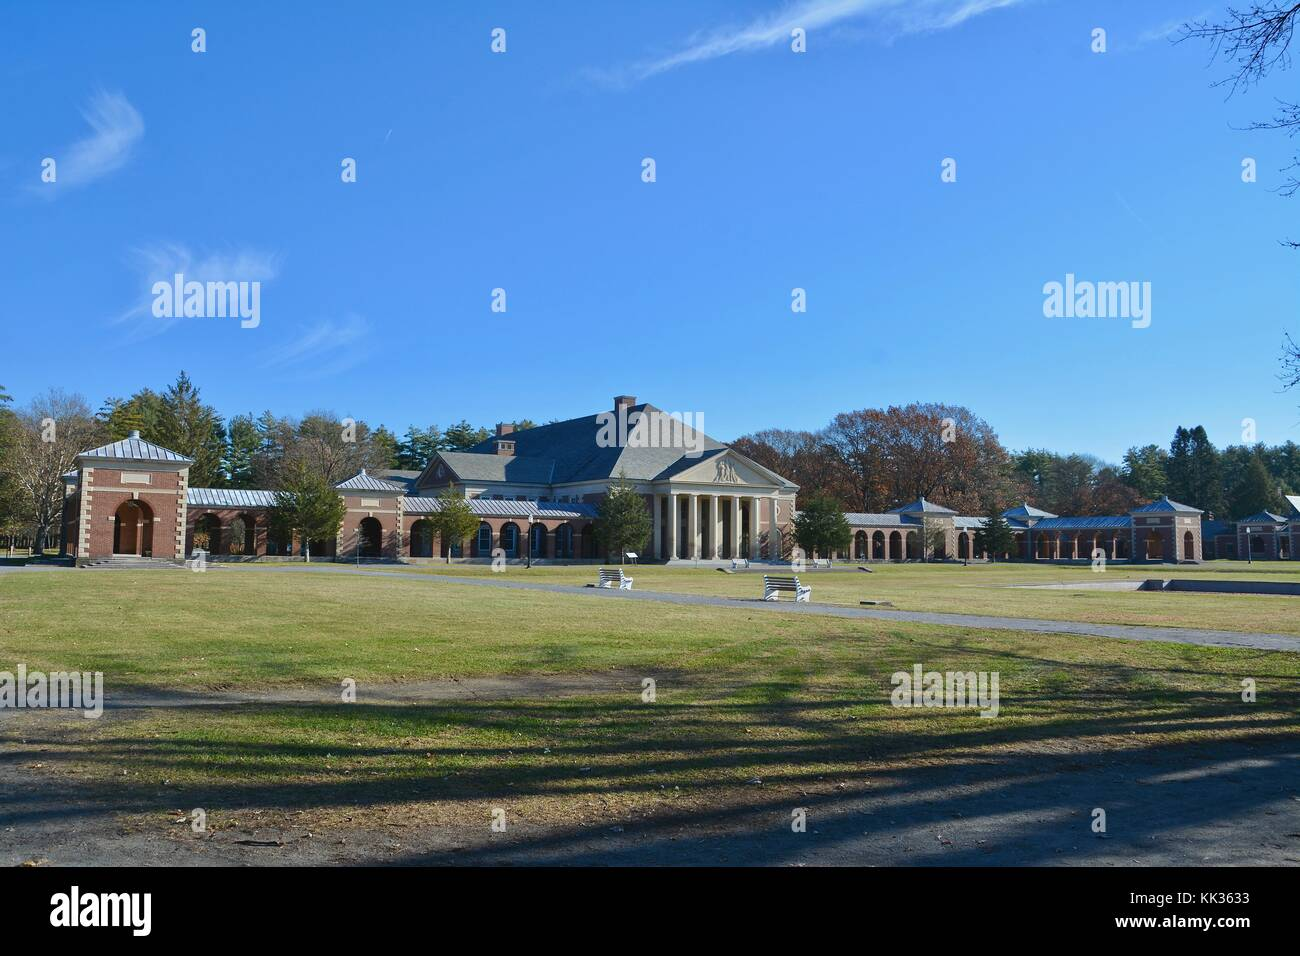 The historic labs, baths, and Hall of Springs buildings at the Saratoga Spa State Park in Saratoga Springs, Upstate - Stock Image